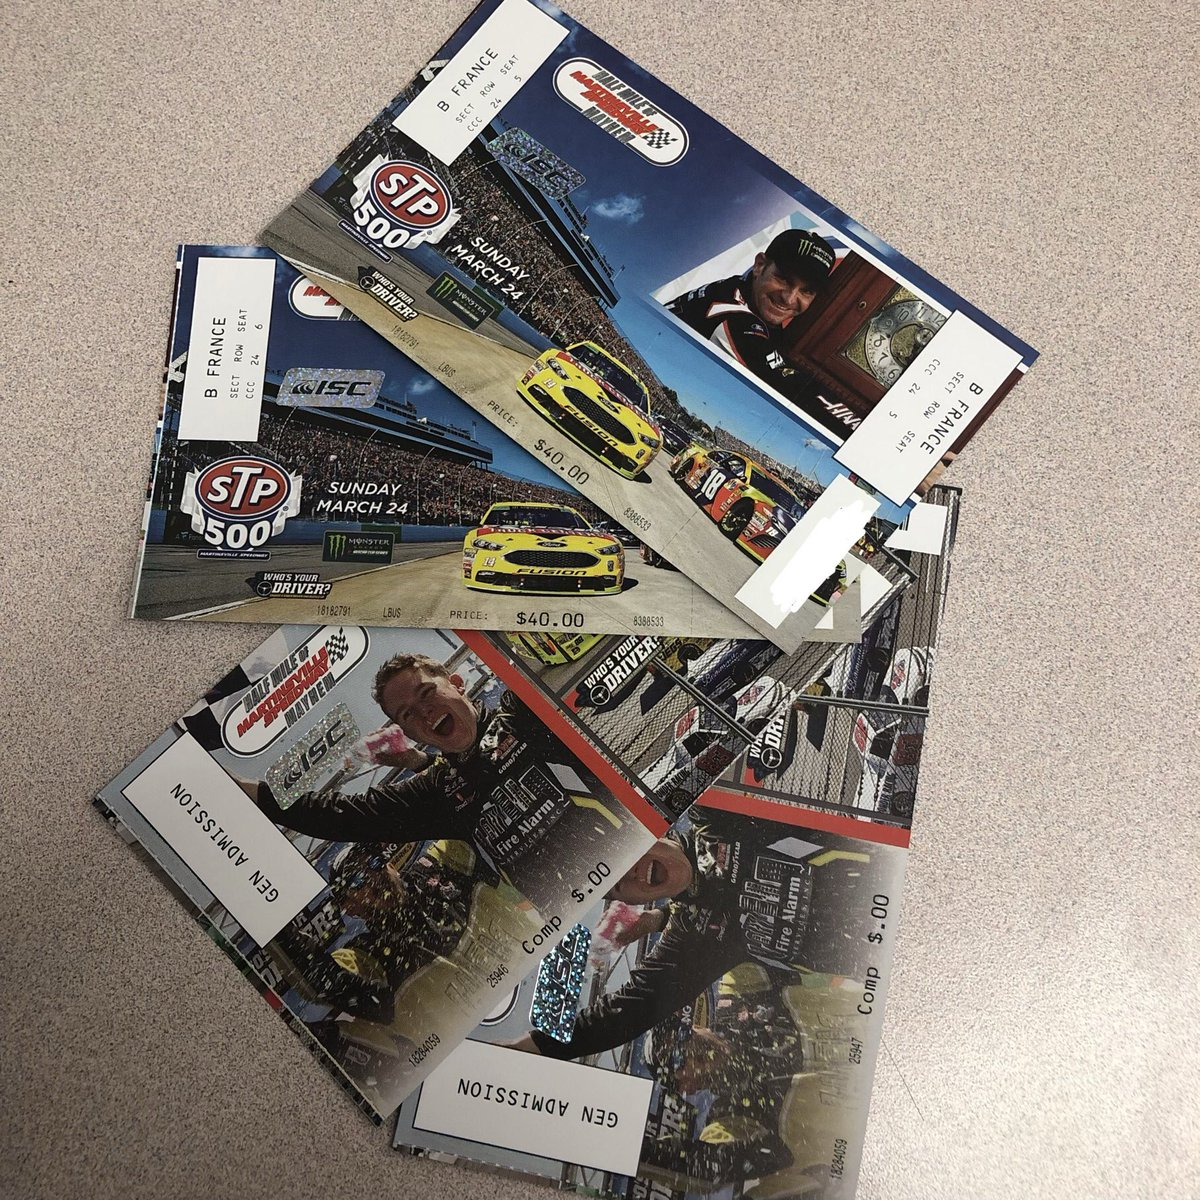 RED ALERT: This is the FINAL #STP500 TICKET GIVEAWAY!!!  To enter: Follow us, follow @OriginalSTP and retweet this post!   We will announce a winner tomorrow, winner will receive a pair of truck and cup tickets to enjoy a full weekend of fun!